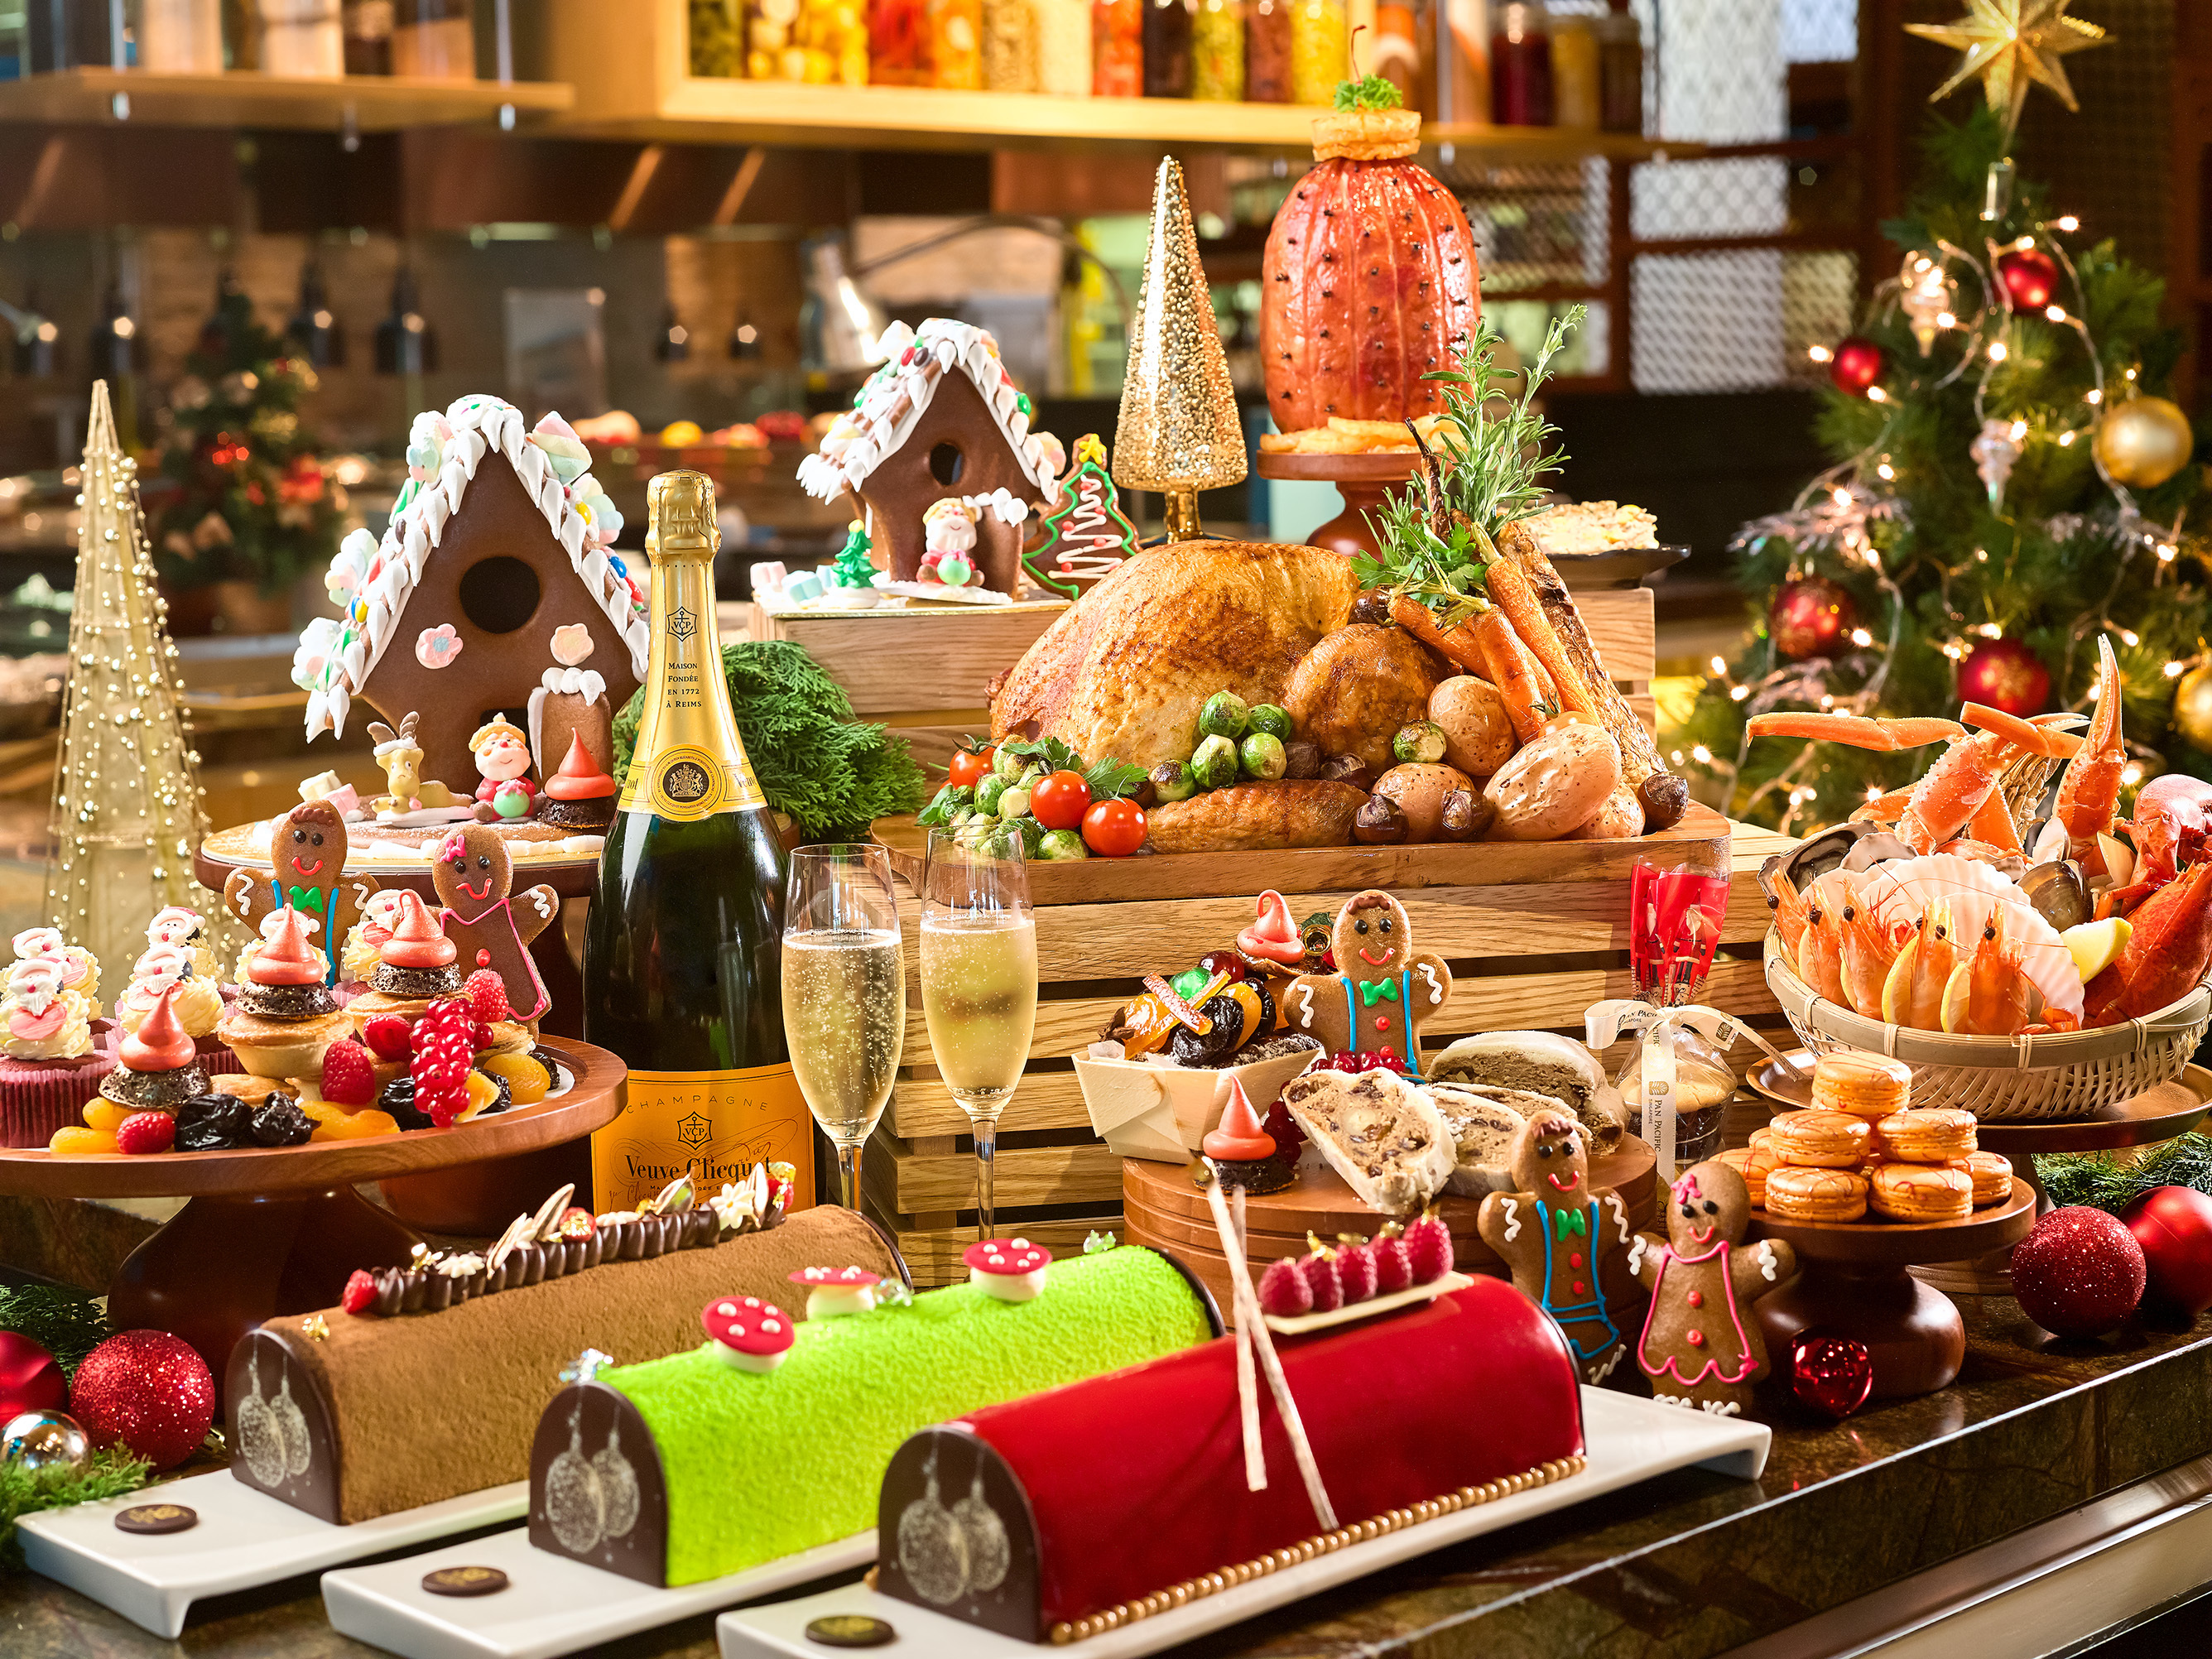 Best Christmas meals and festive menus in Singapore